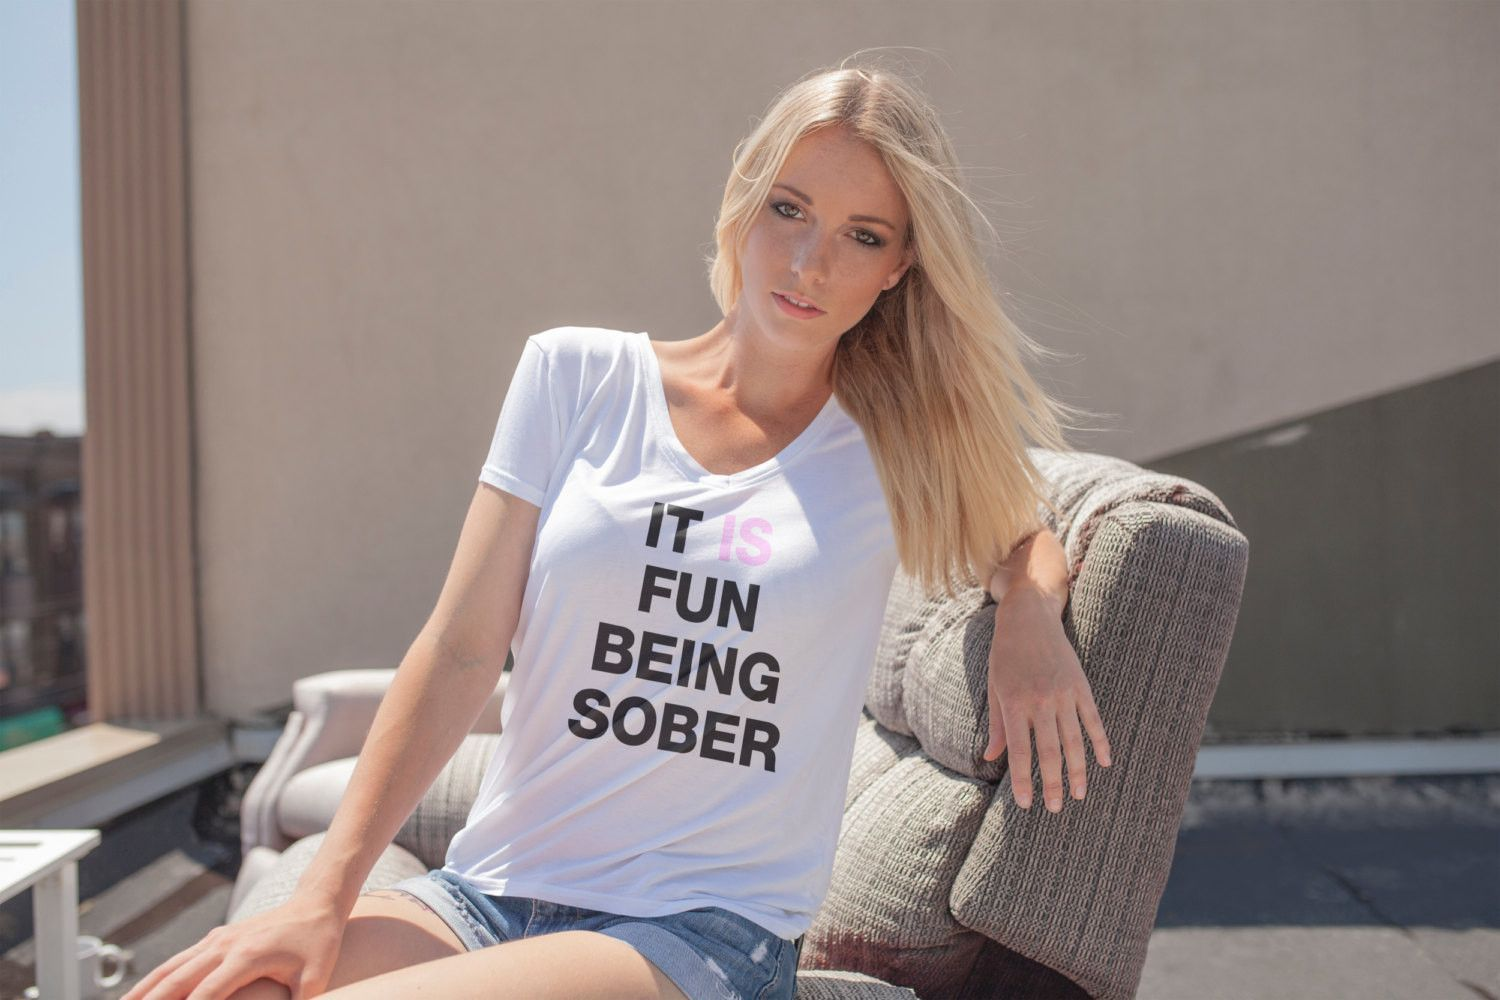 It Is Fun Being Sober T-shirt (The Perfect Tee)